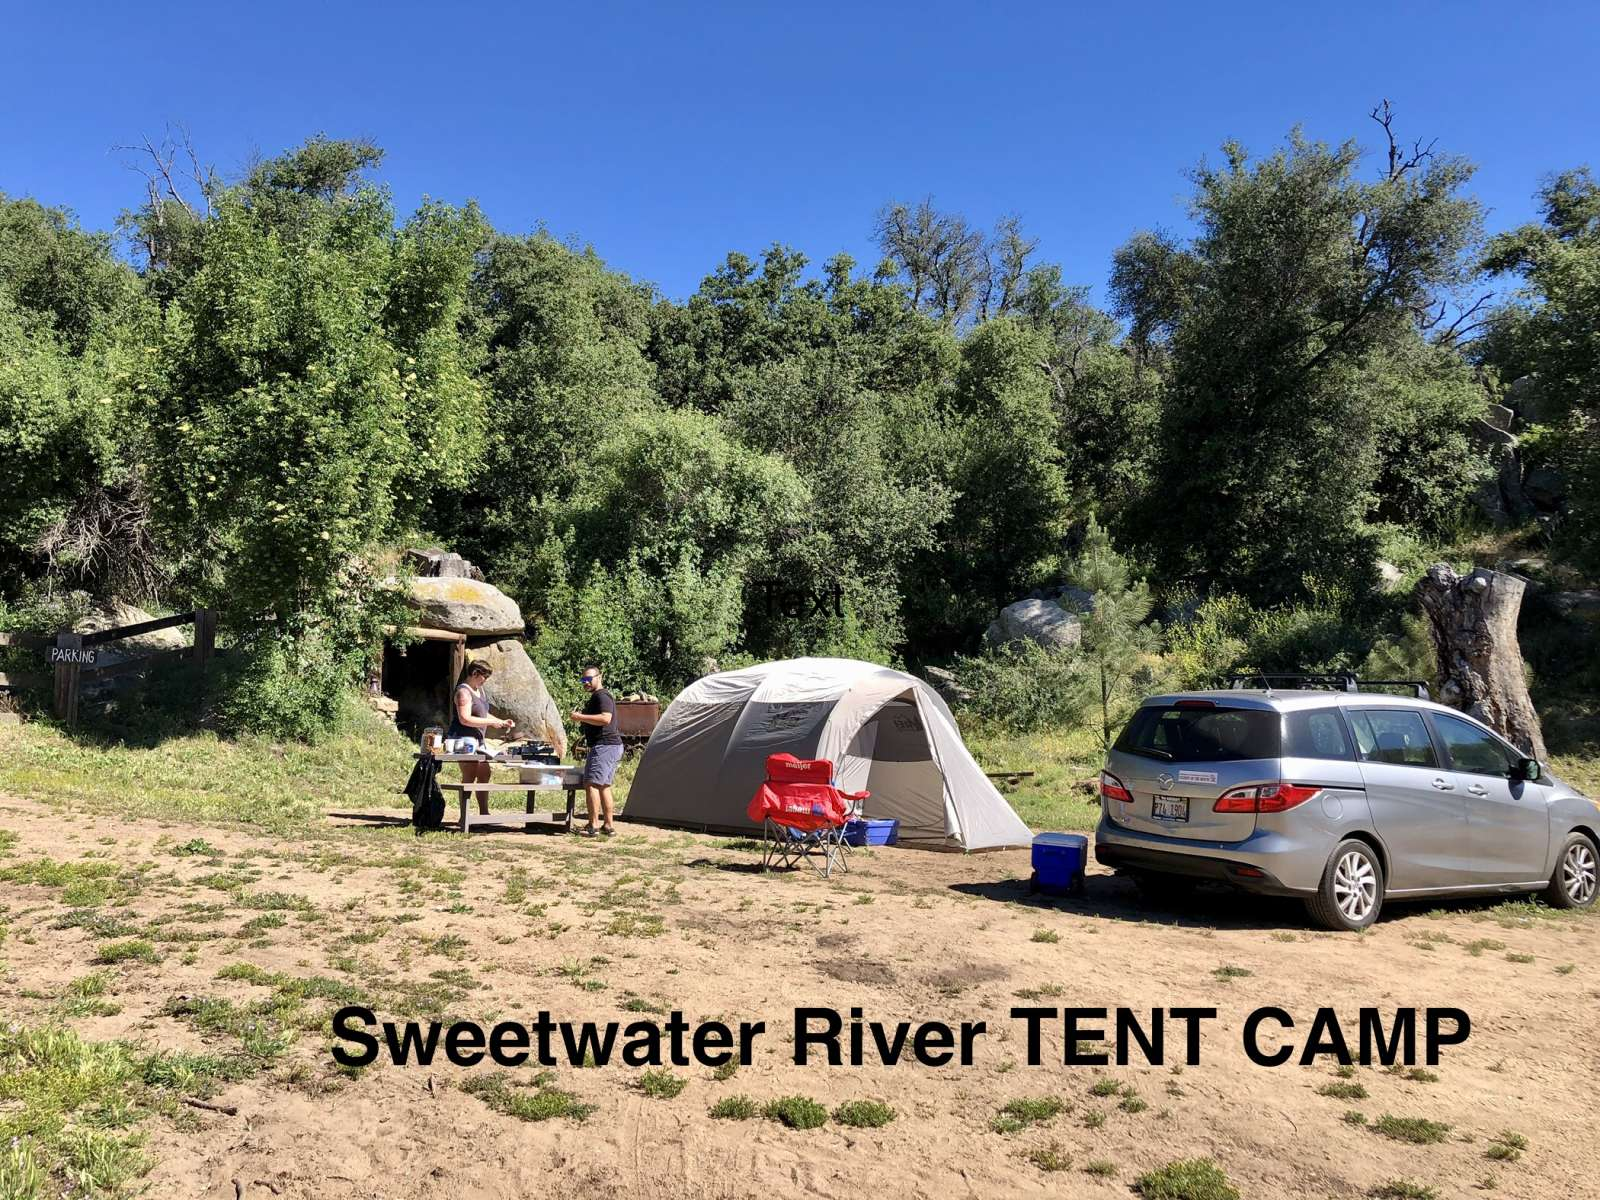 Sweetwater River Tent Camp